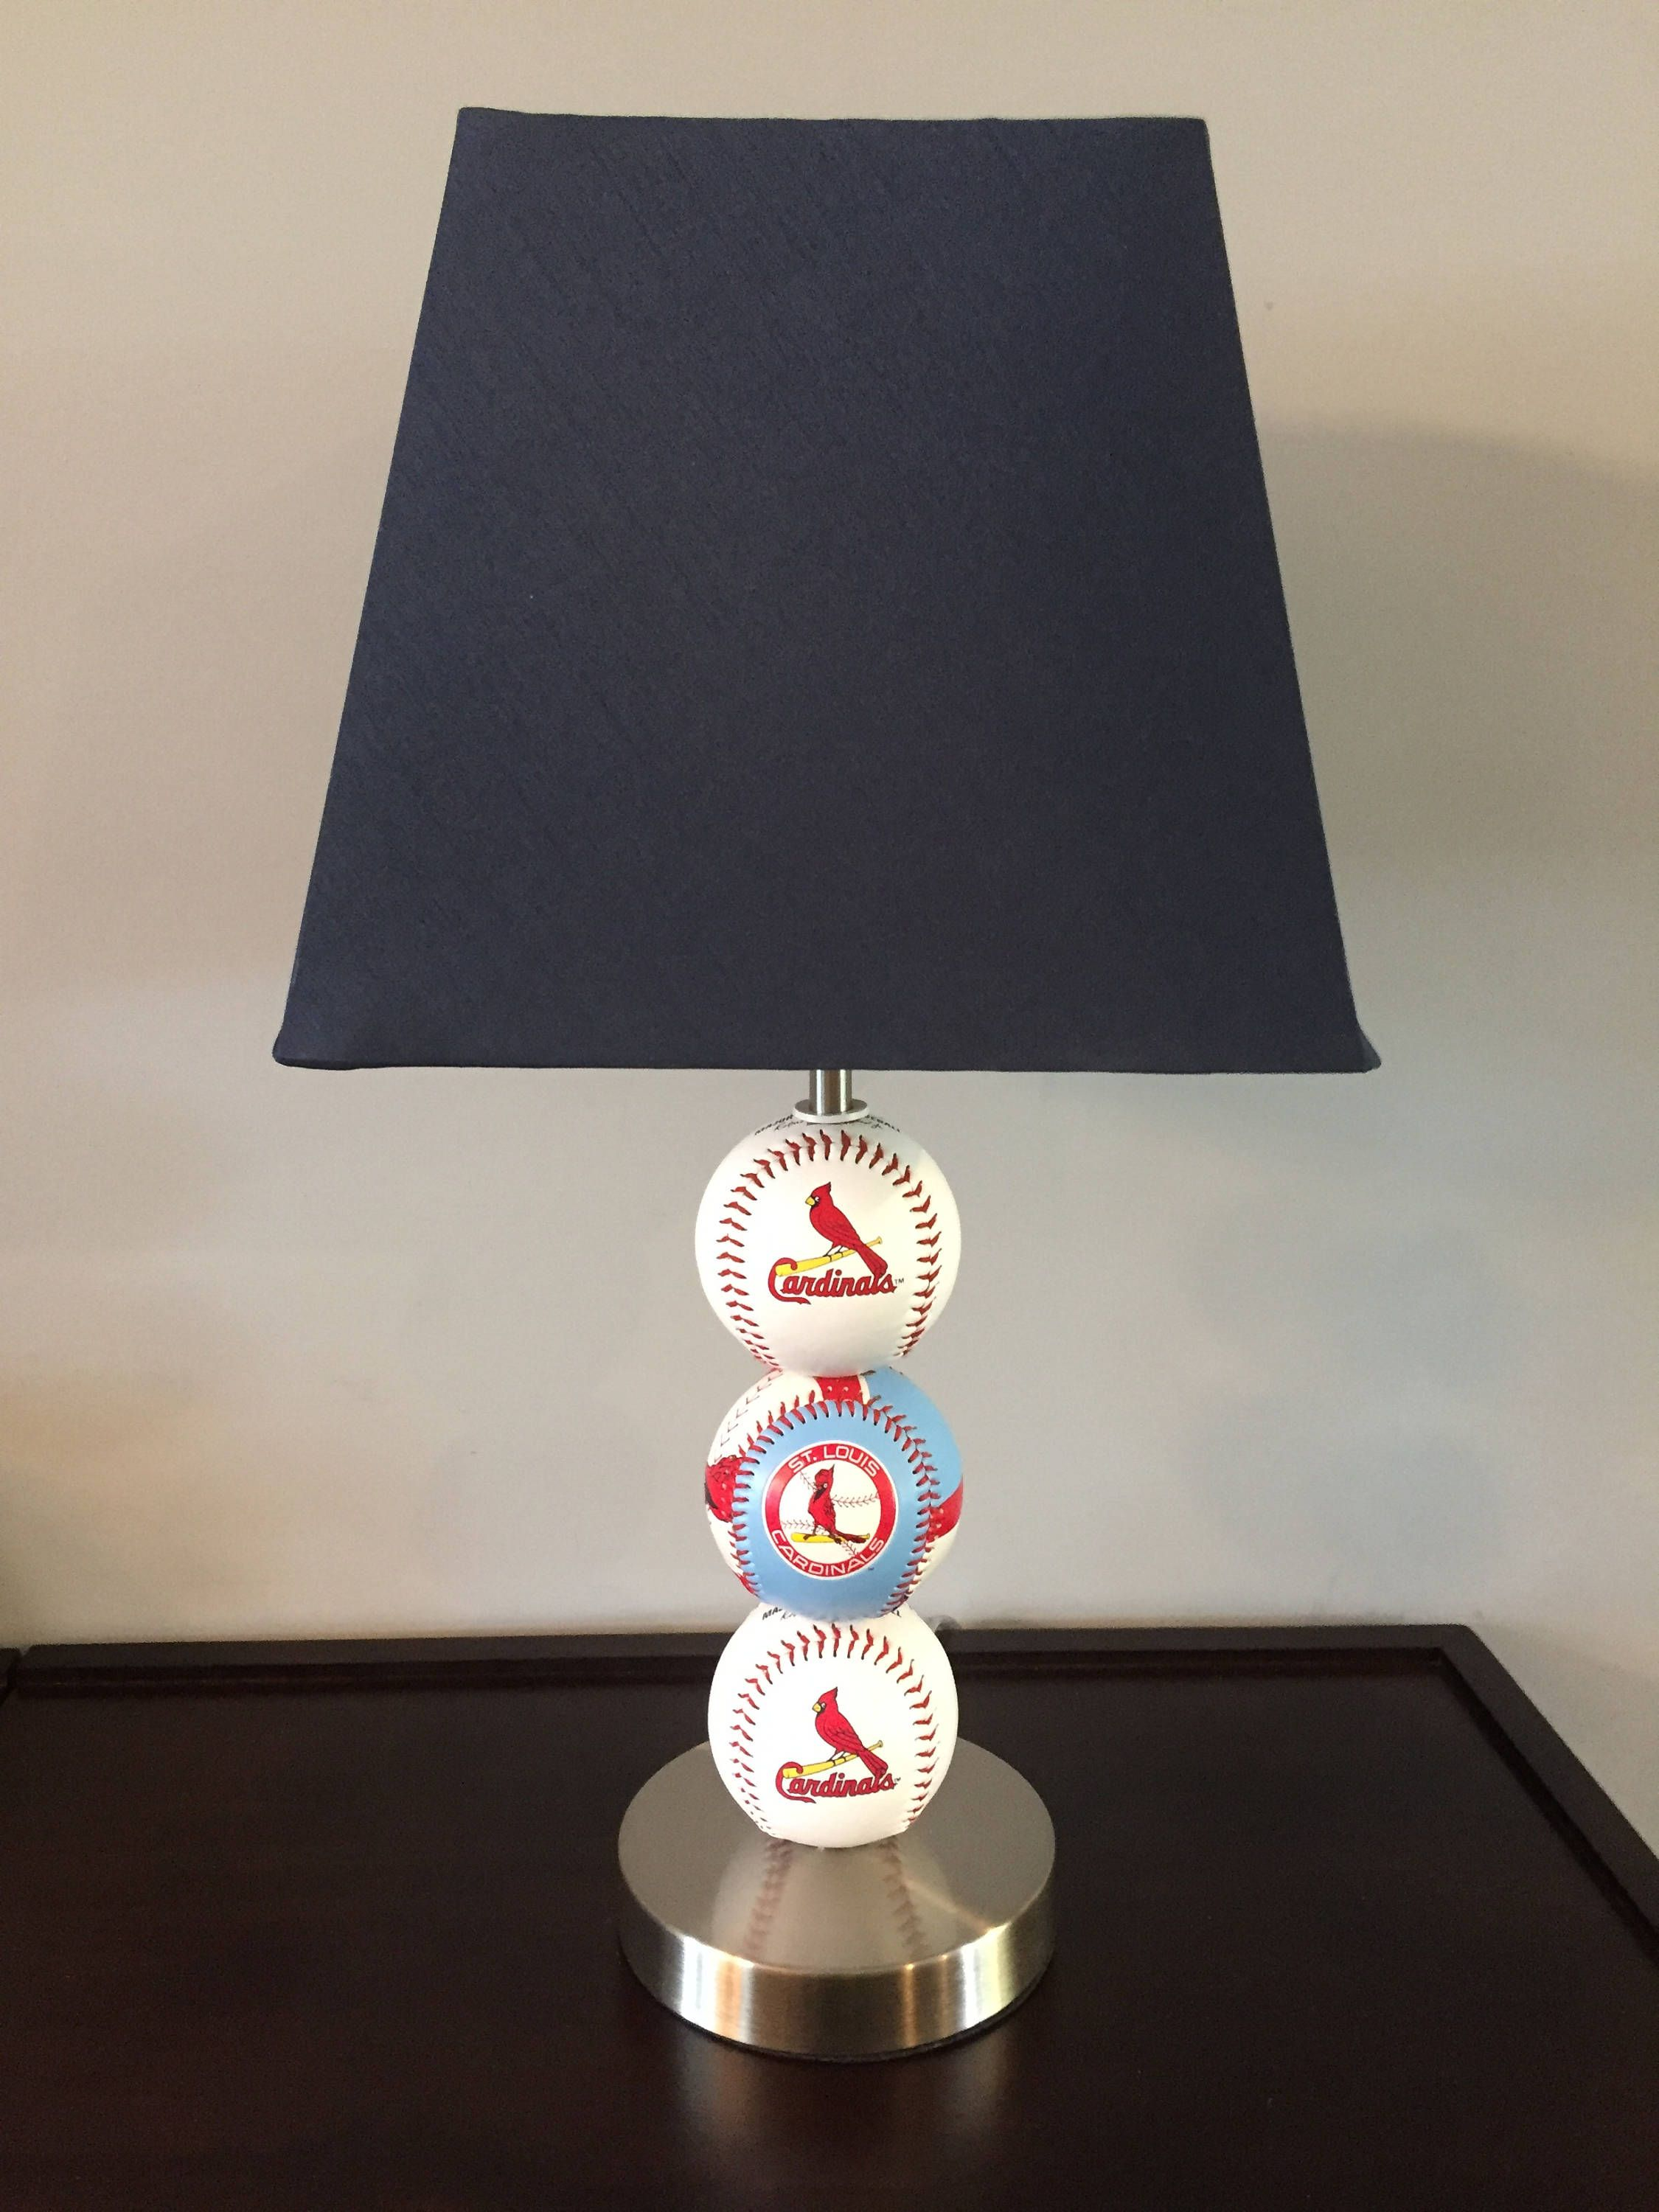 Pin by christy vesci on christy vs custom creations pinterest baseball lamp baseball table square lamp shades st louis cardinals baseball retro logos brushed stainless steel table lamps buffet lamps mozeypictures Choice Image